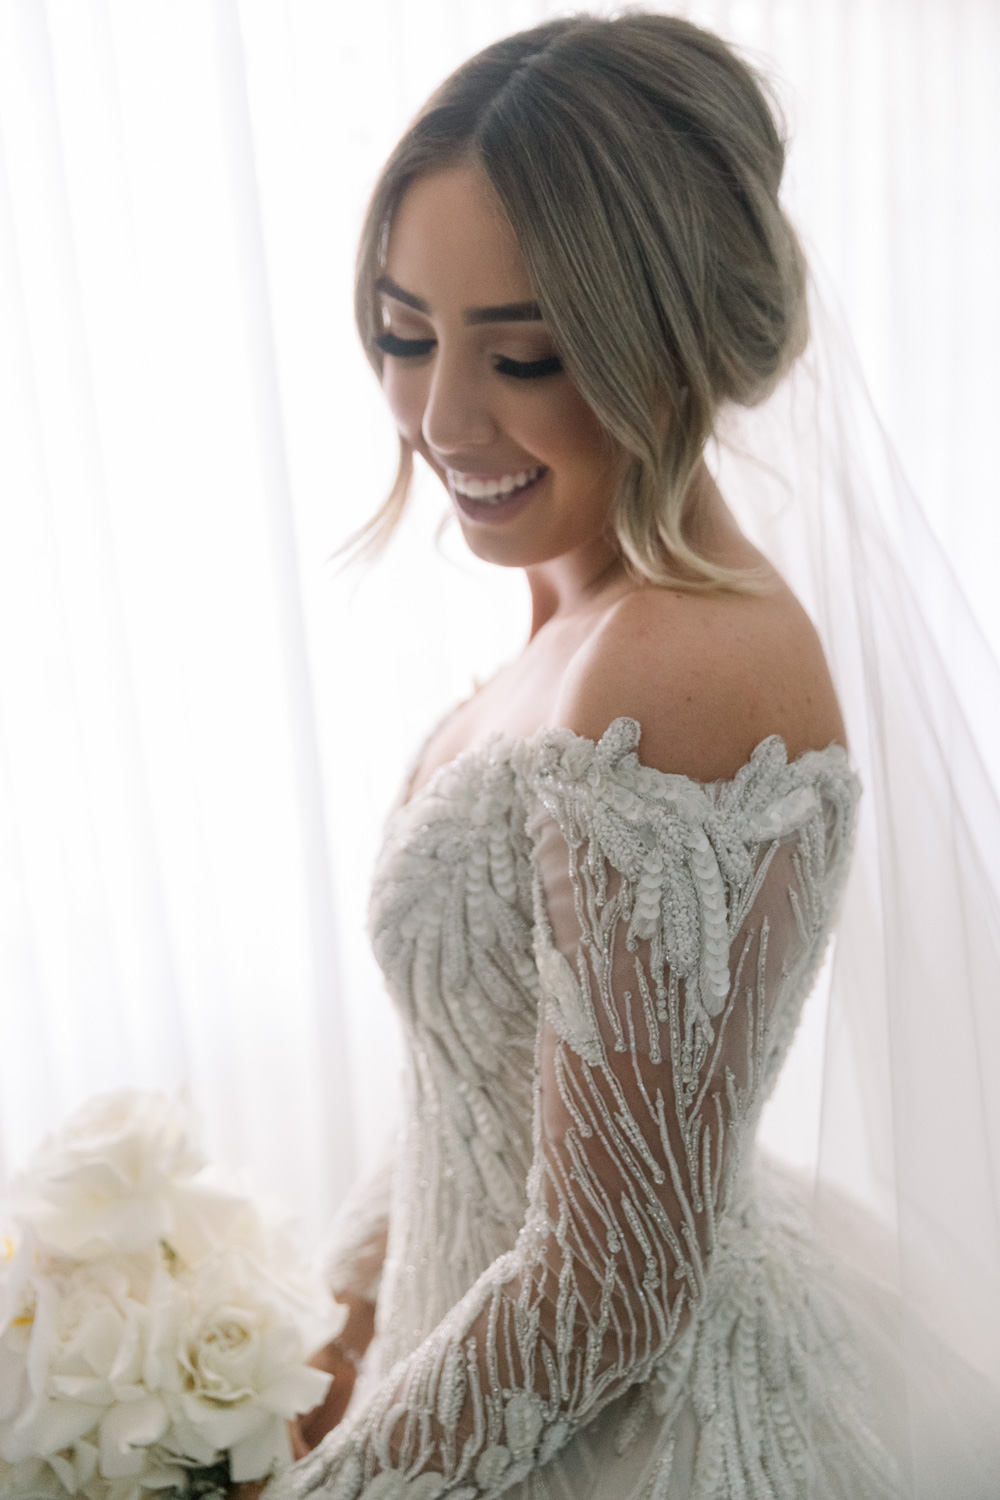 Bride portrait with steven khalil wedding gown